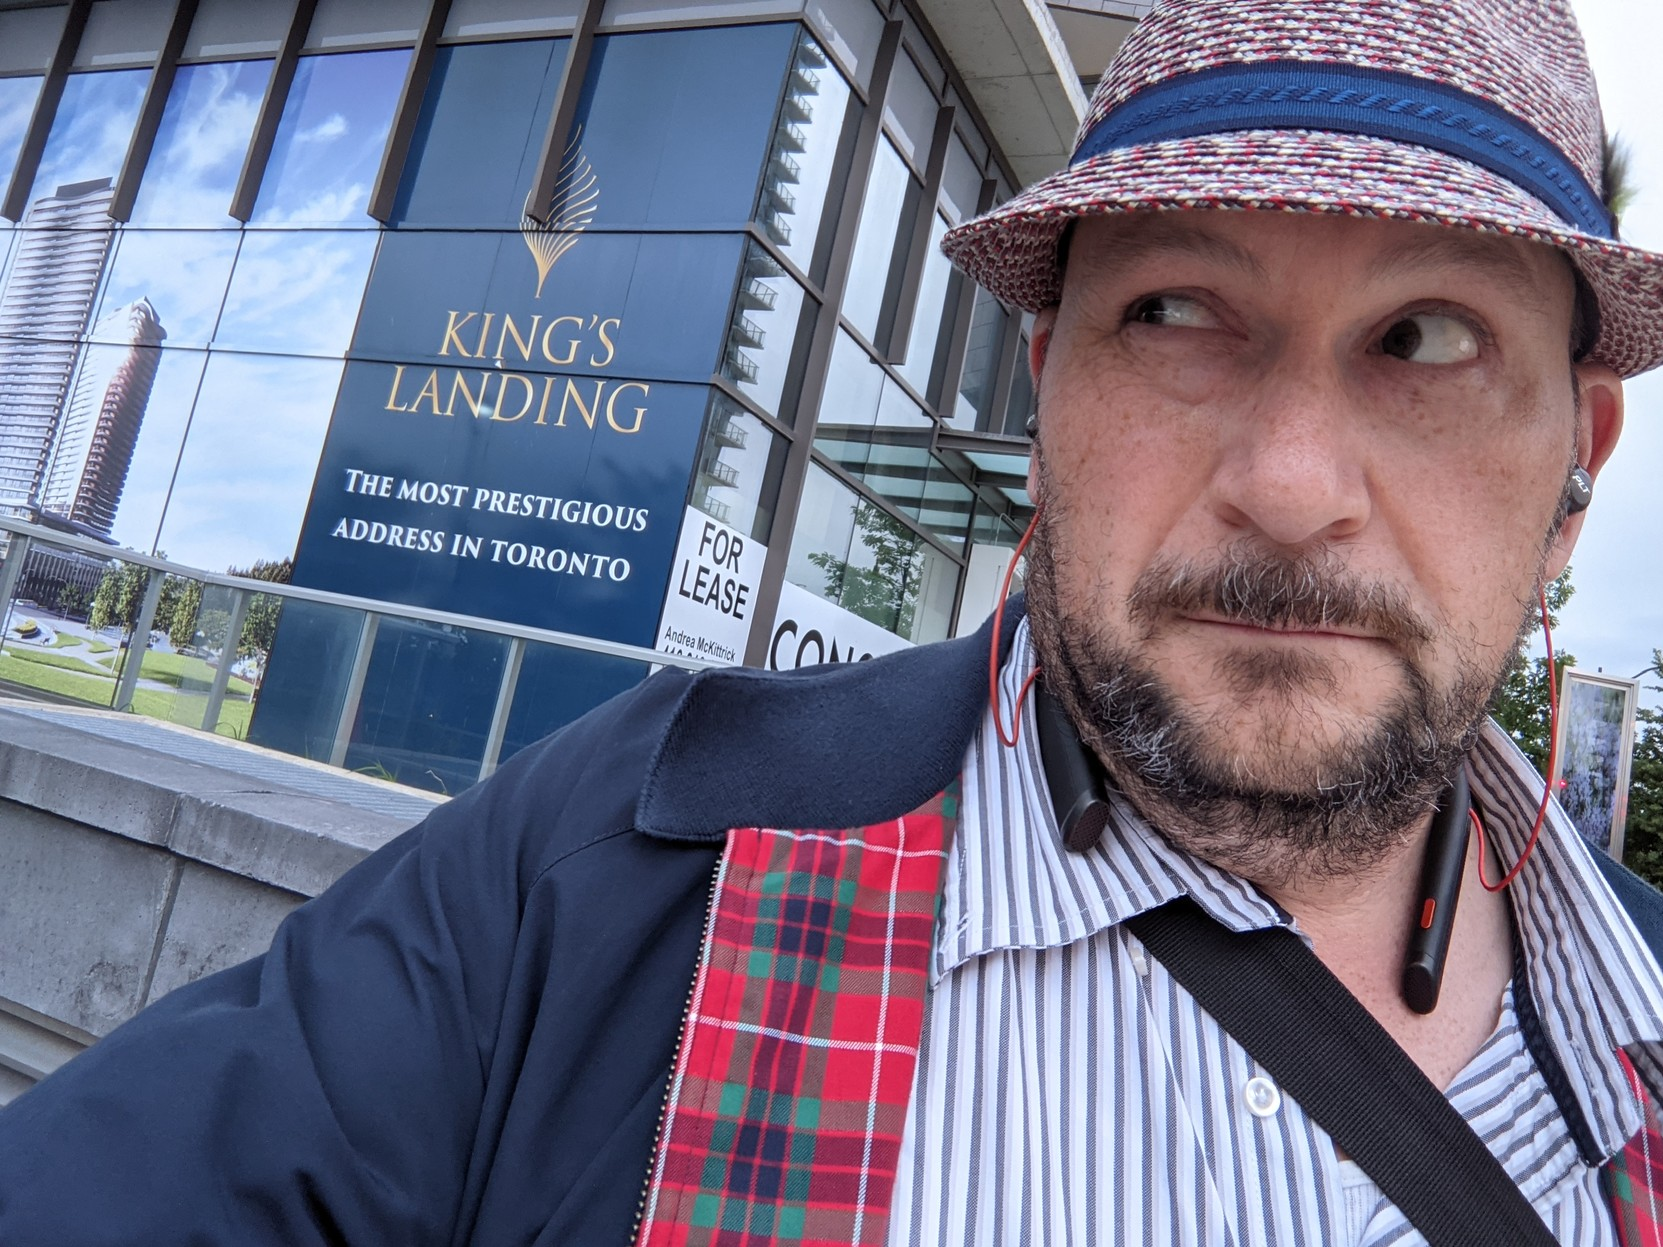 """Selfie of self looking very dapper, but giving side-eye to a Toronto condo development under construction, titled """"King's Landing"""""""